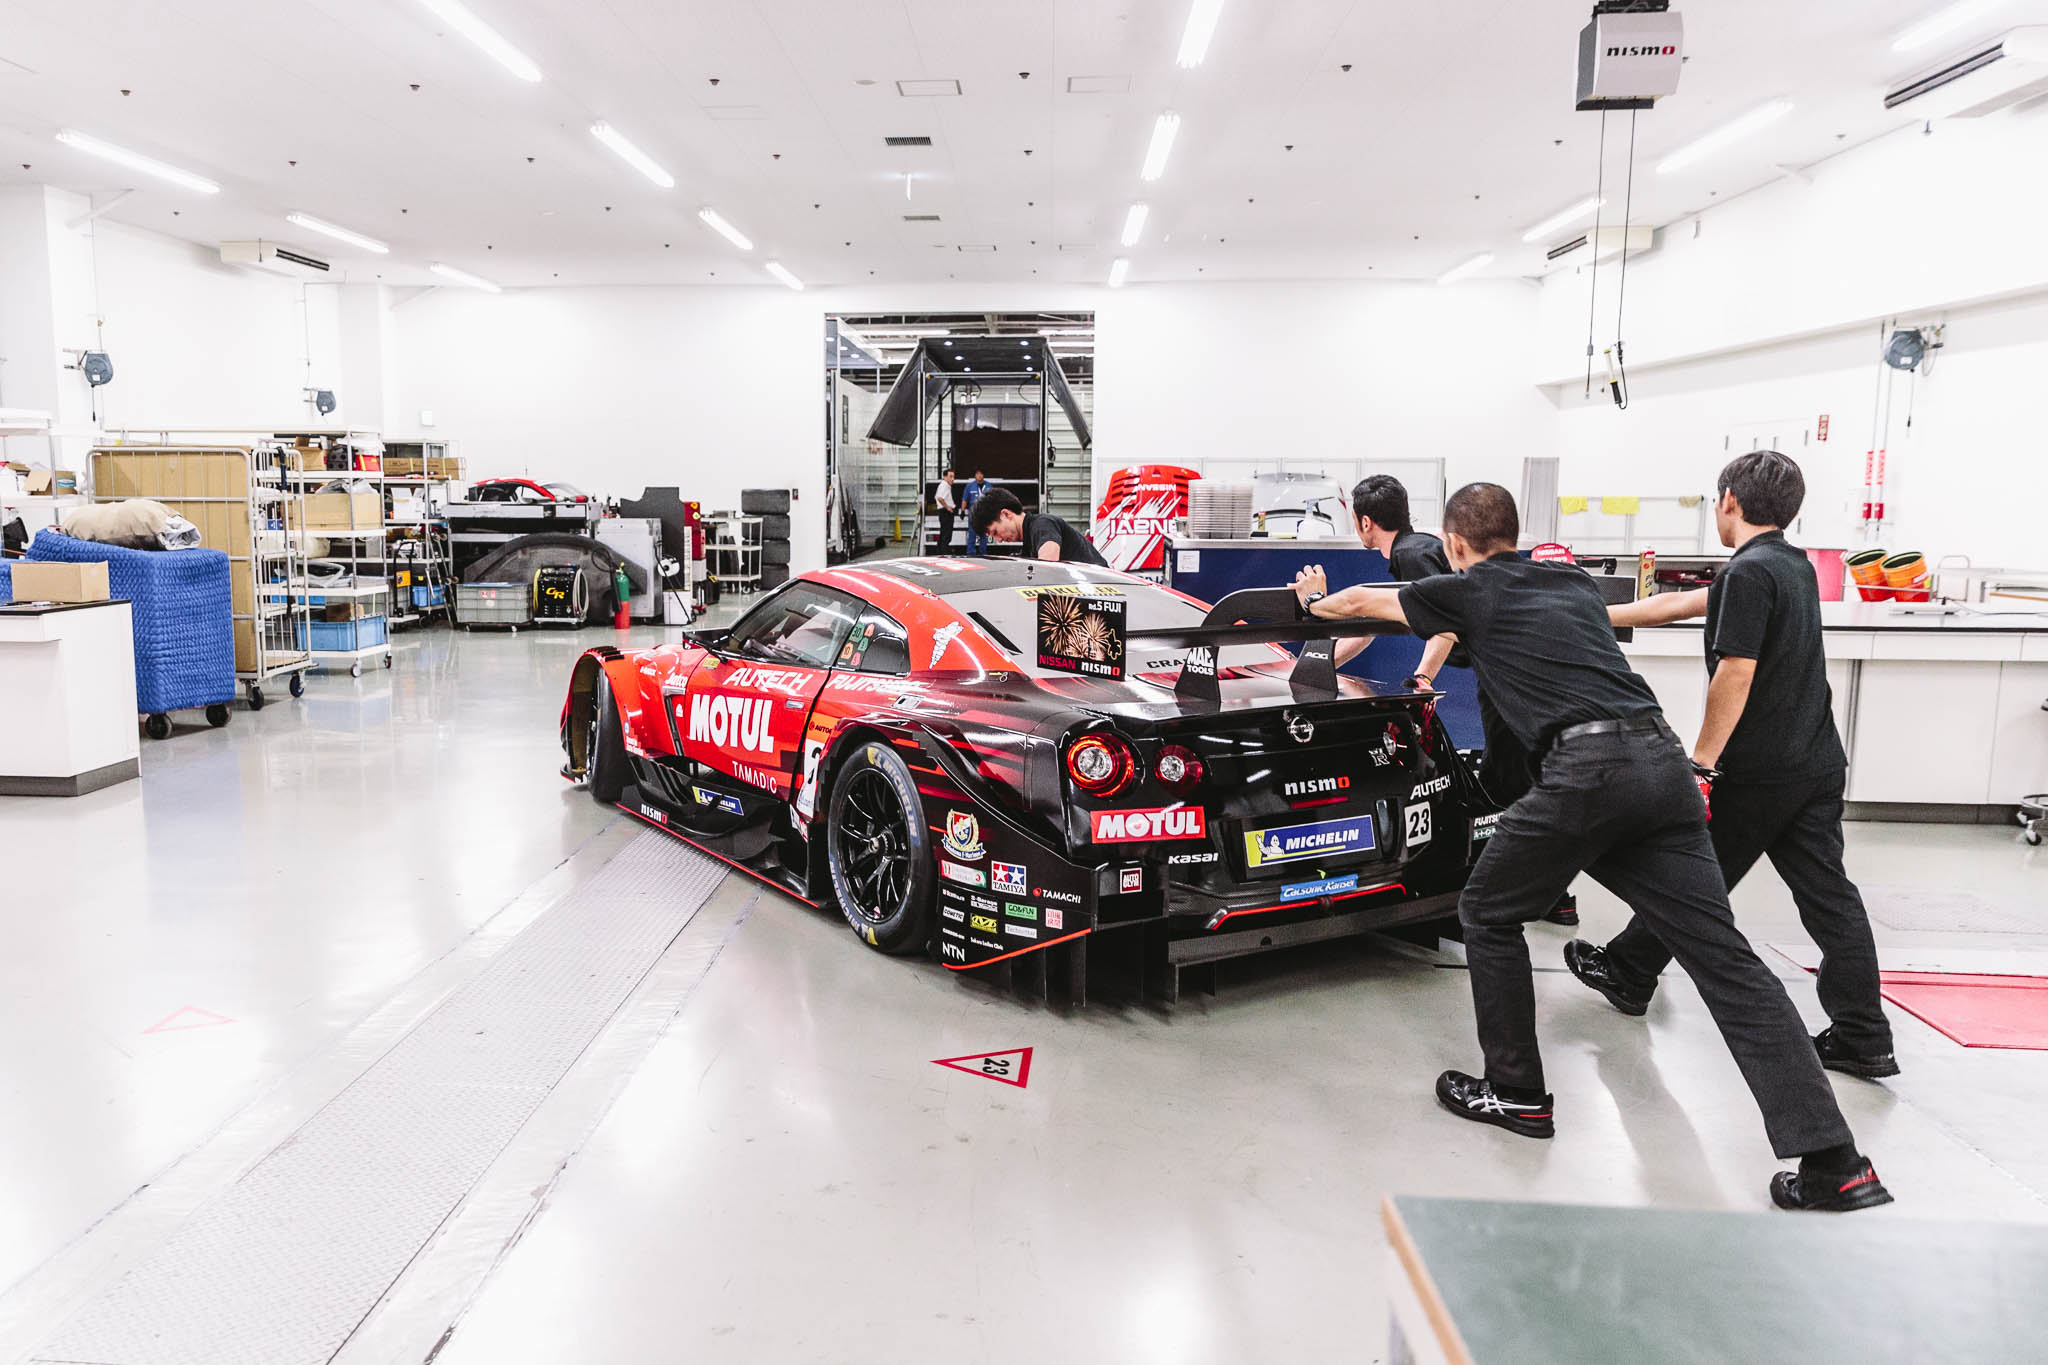 Visiting the heart of Nismo at the Omori factory